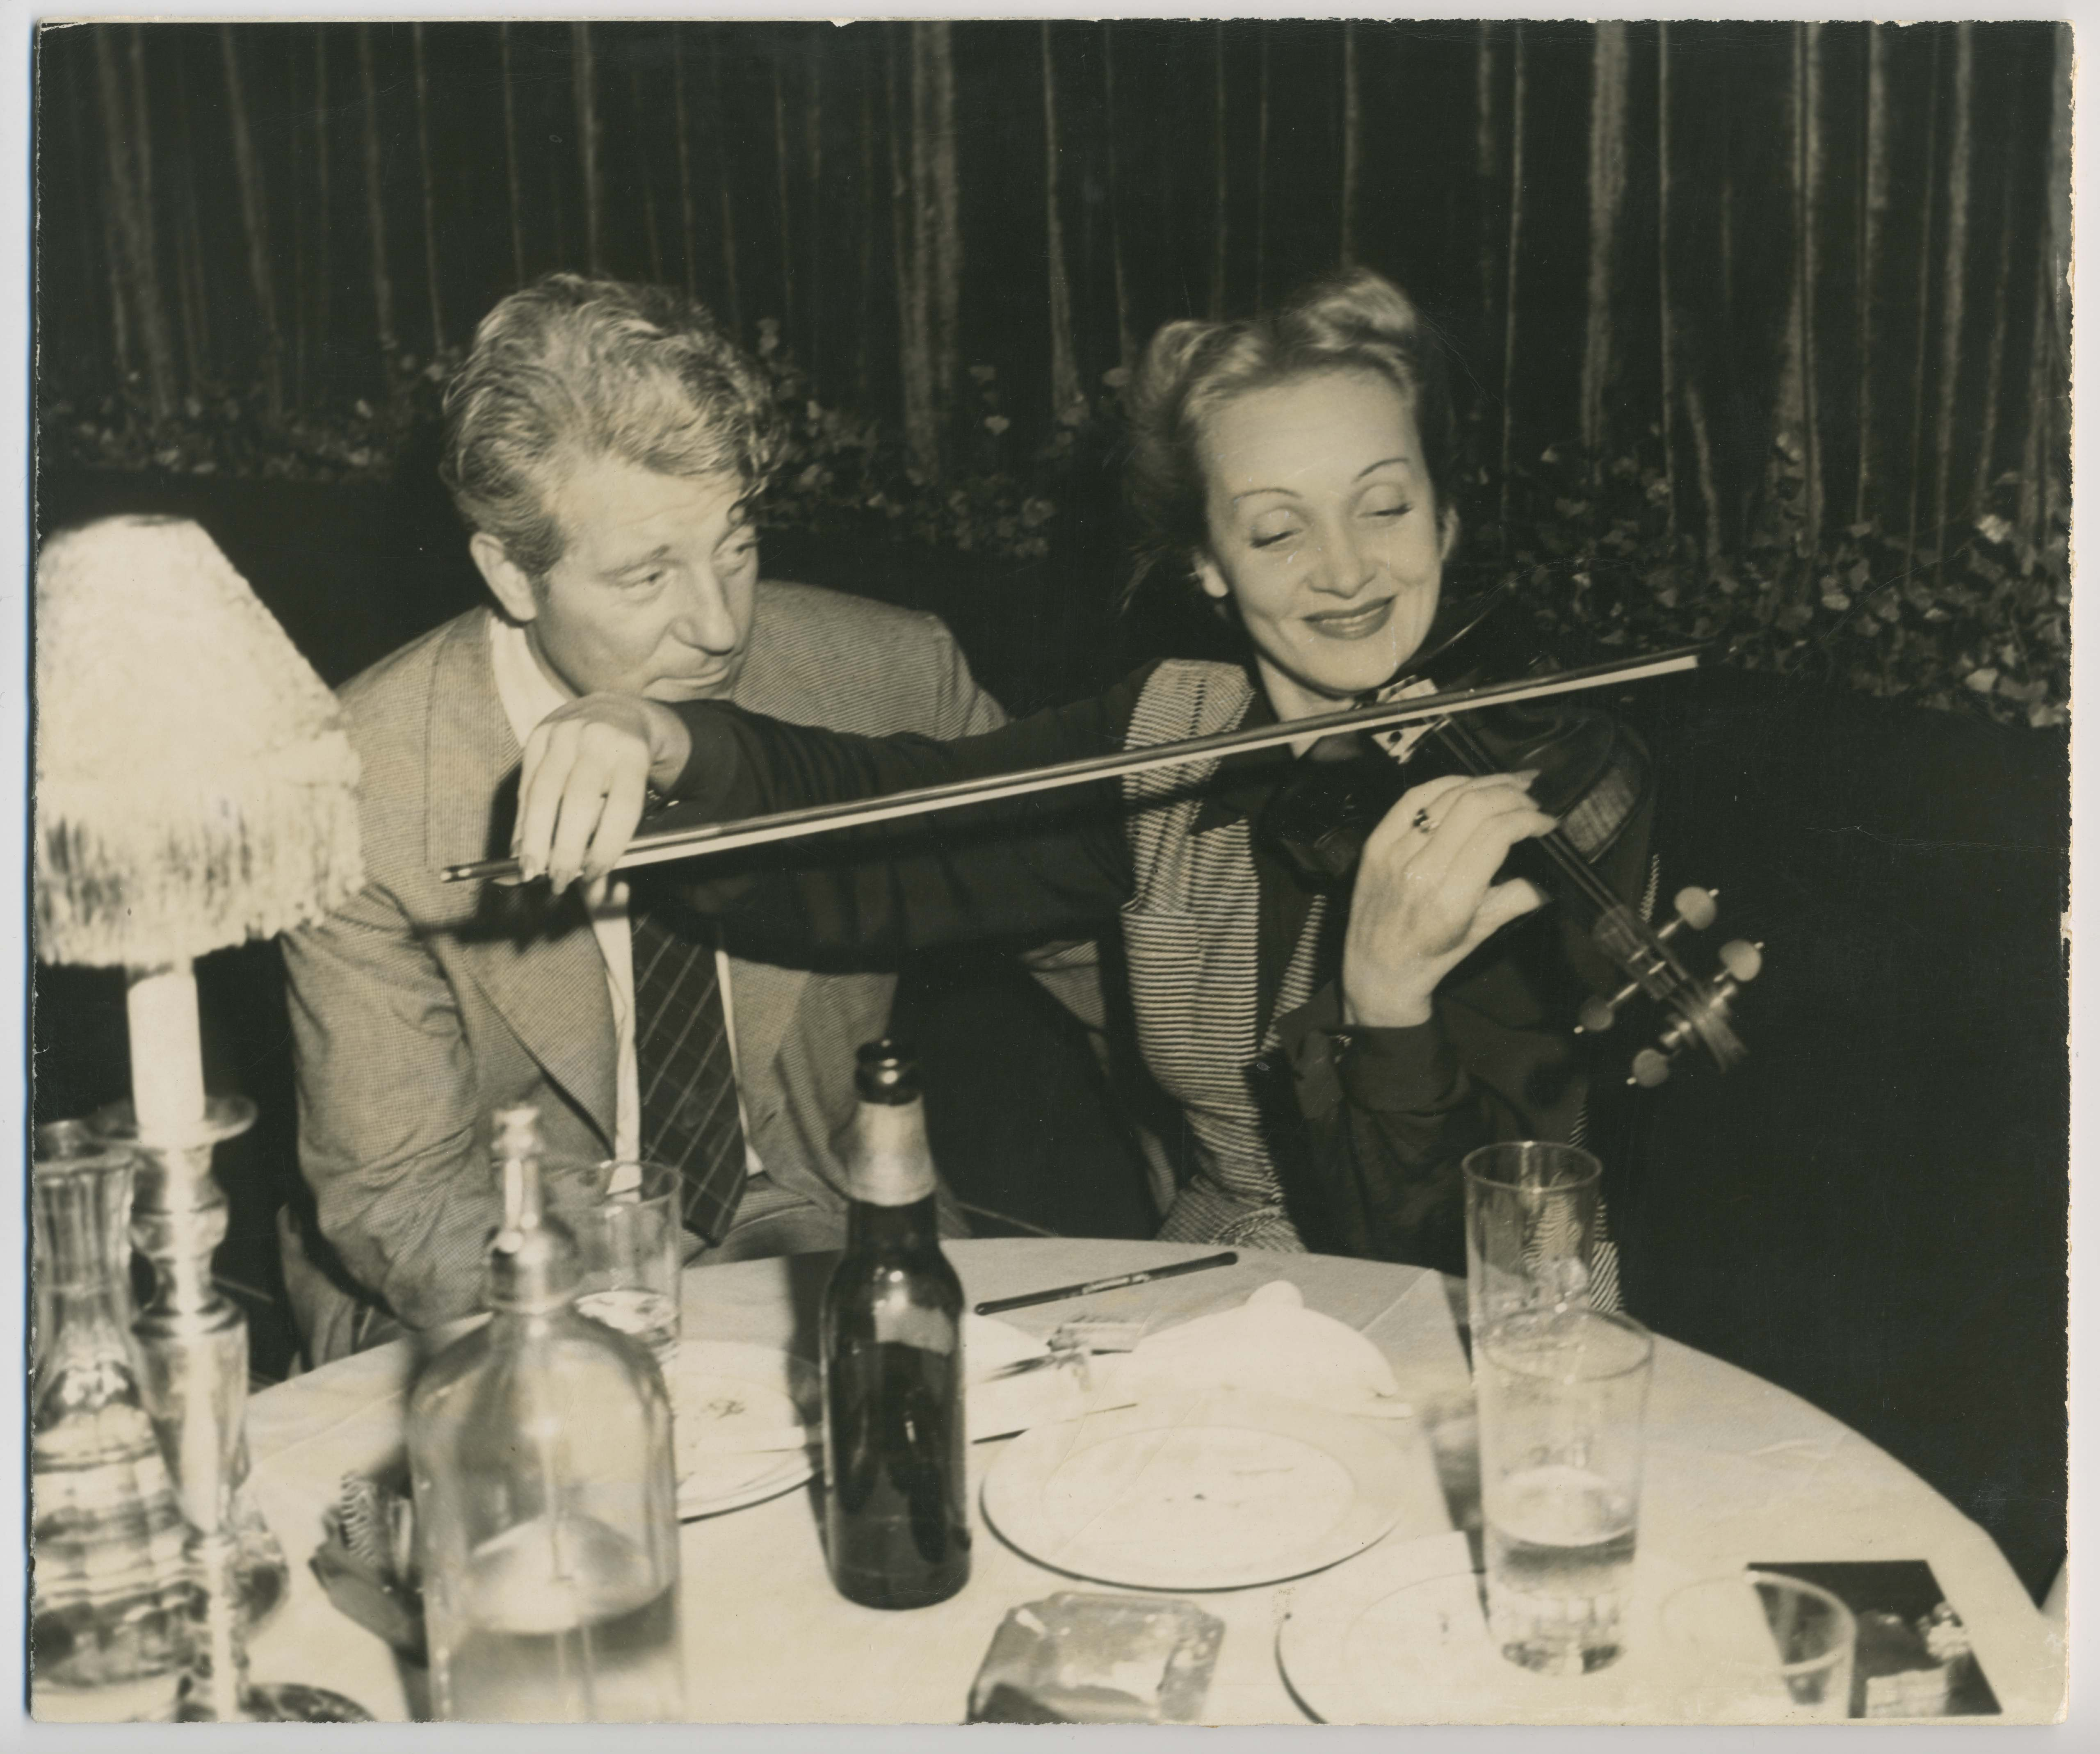 Jean Gabin and Marlene Dietrich, New York, 1944